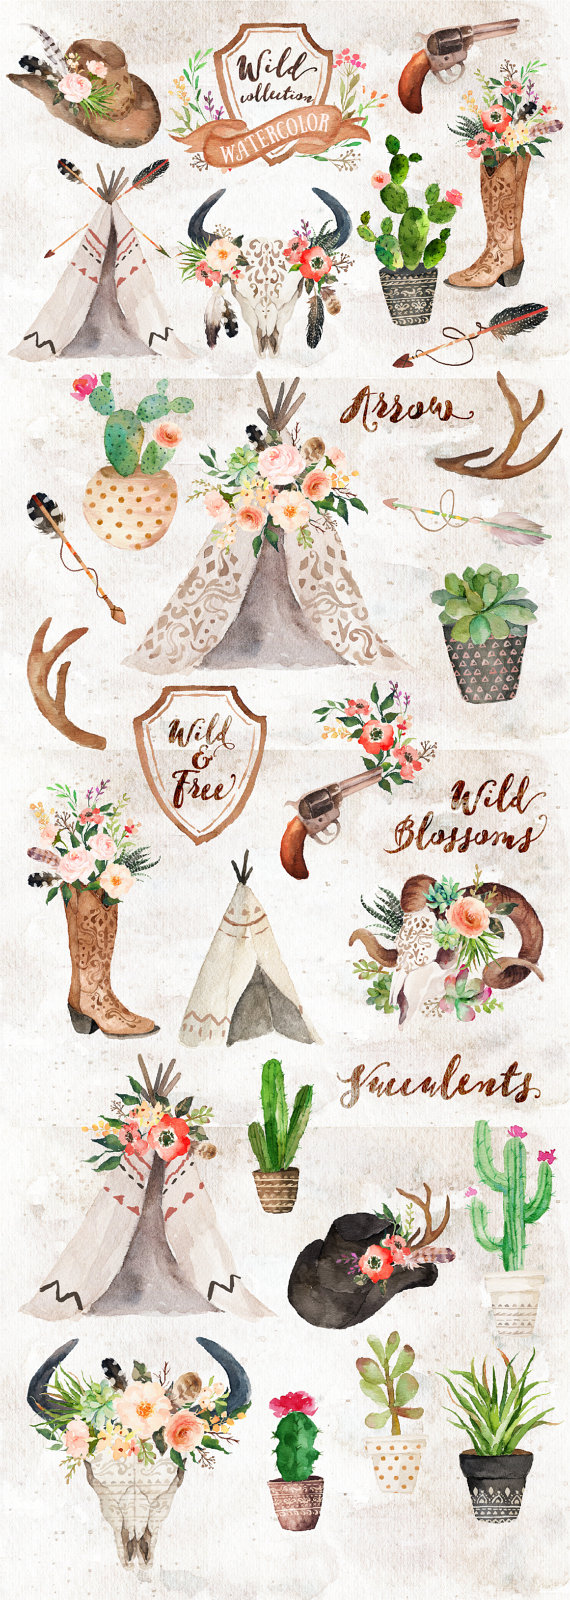 Watercolor wild west collection. Boho clipart themed